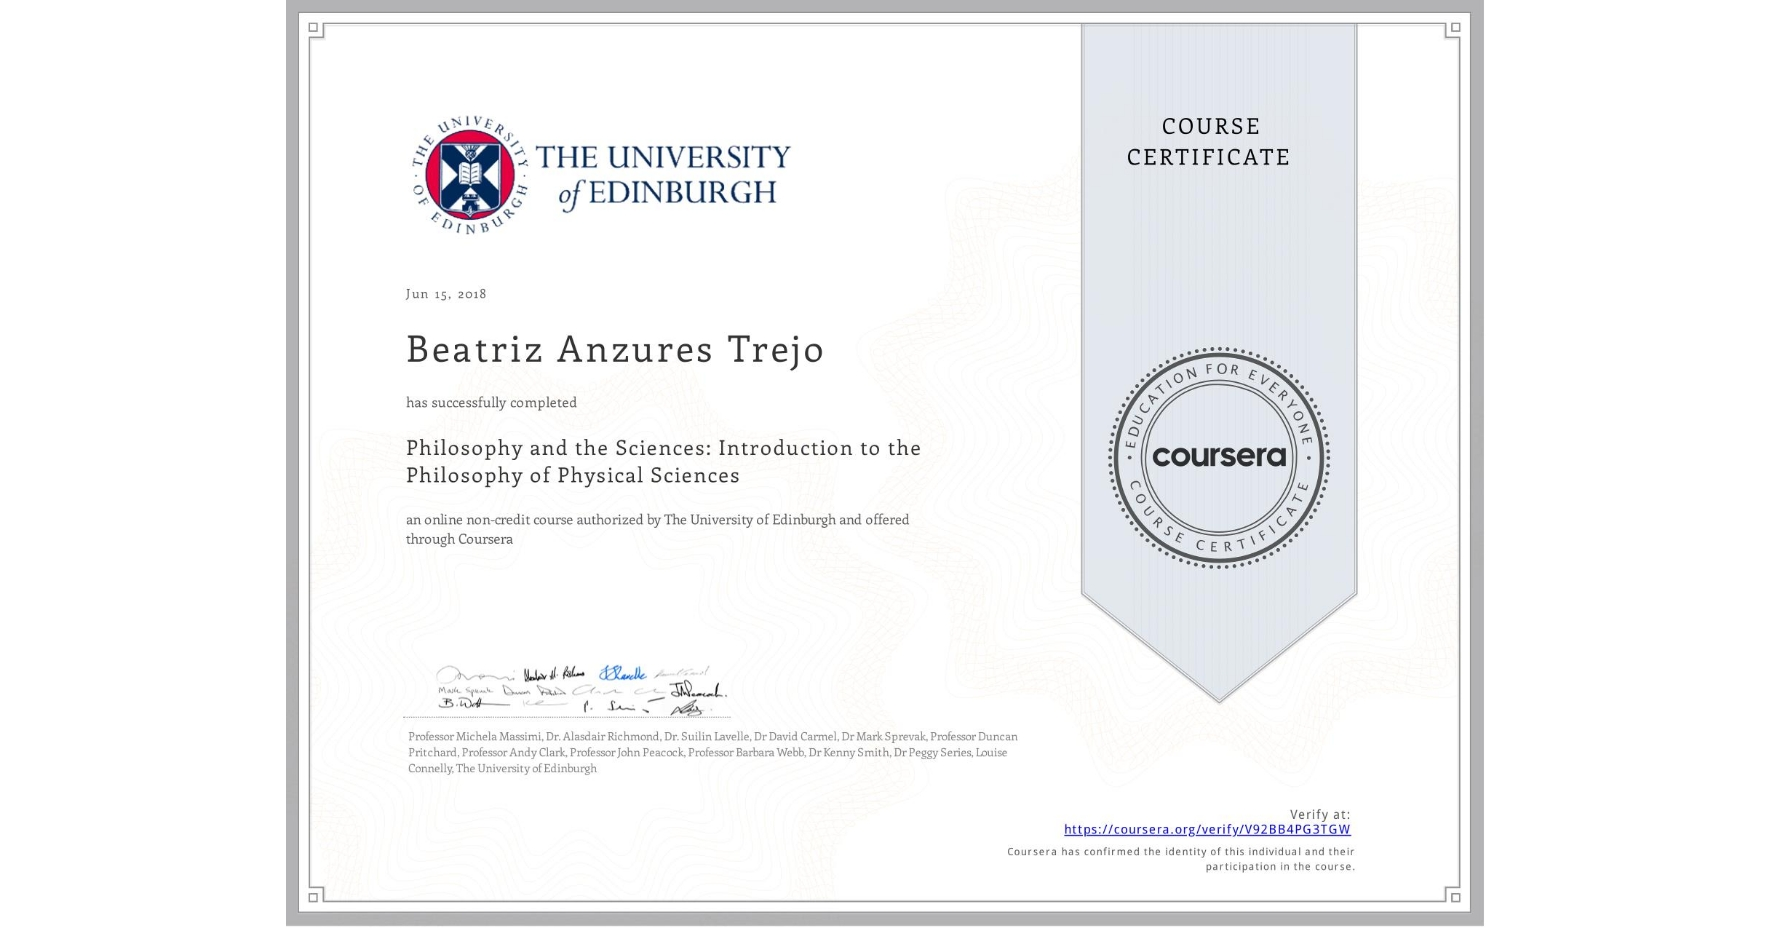 View certificate for Beatriz Anzures Trejo, Philosophy and the Sciences: Introduction to the Philosophy of Physical Sciences, an online non-credit course authorized by The University of Edinburgh and offered through Coursera